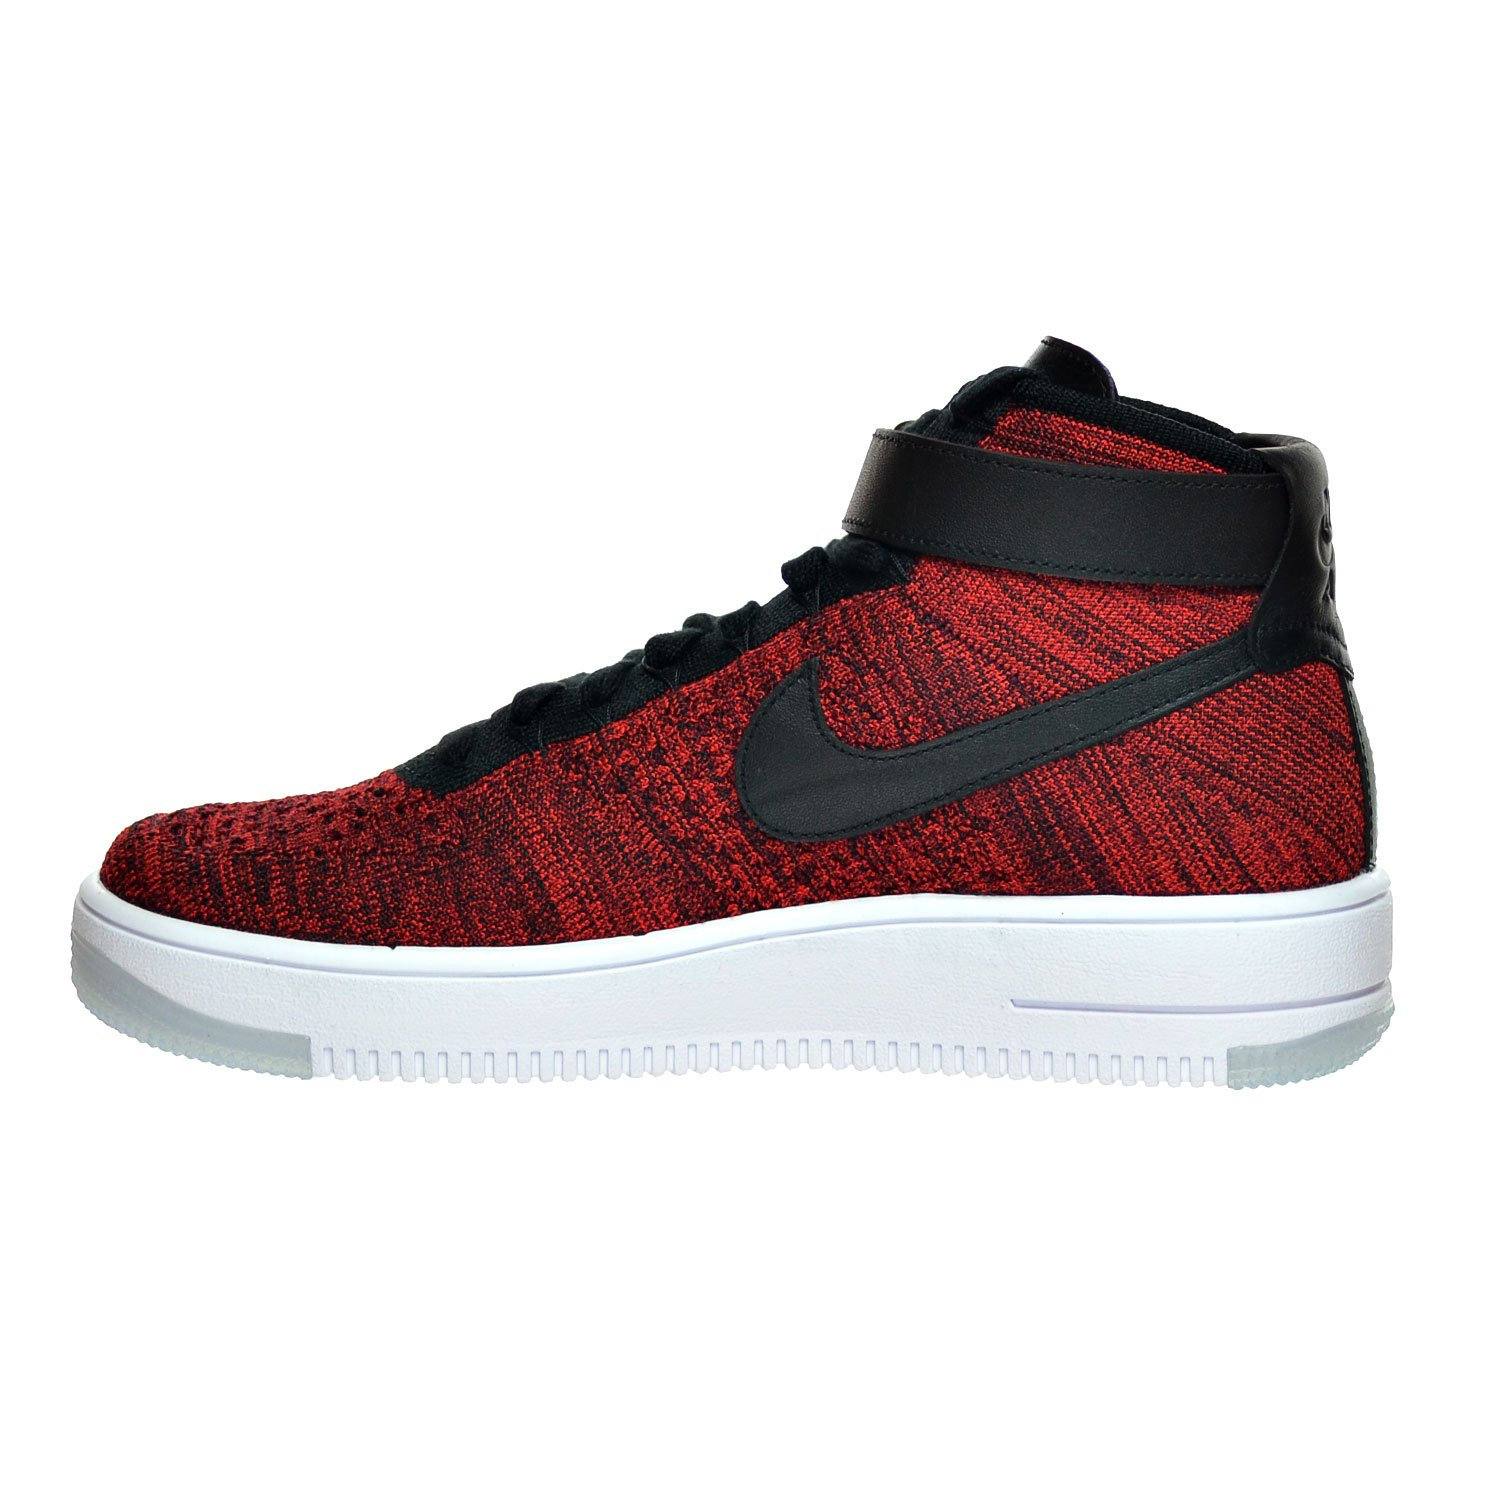 c0ba184b8ad9 Nike AF1 Ultra Flyknit Mid Men s Shoe University Red Black Team Red White  817420-600 (7.5 D(M) US)  Amazon.ca  Shoes   Handbags